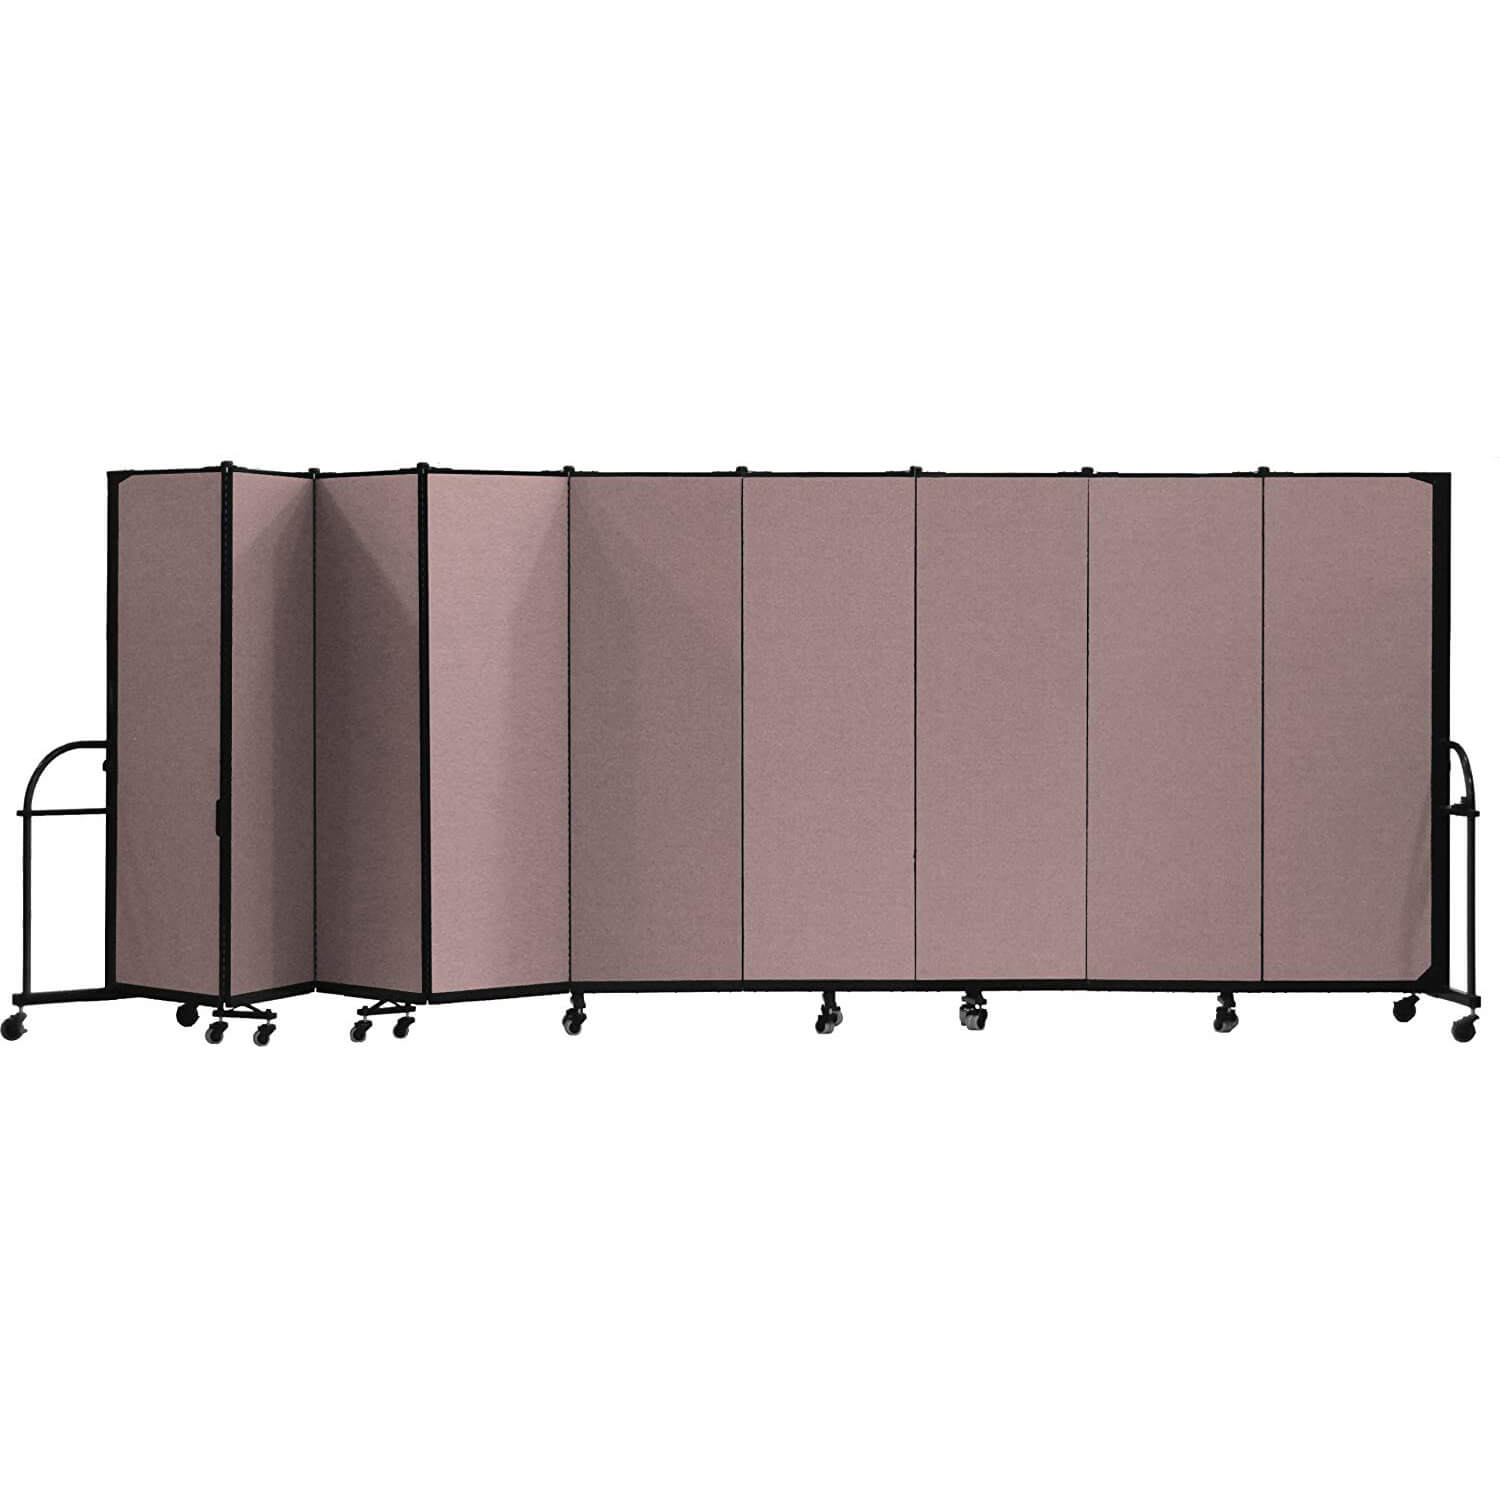 Panel room dividers CUB QSCFSL609DM RCS